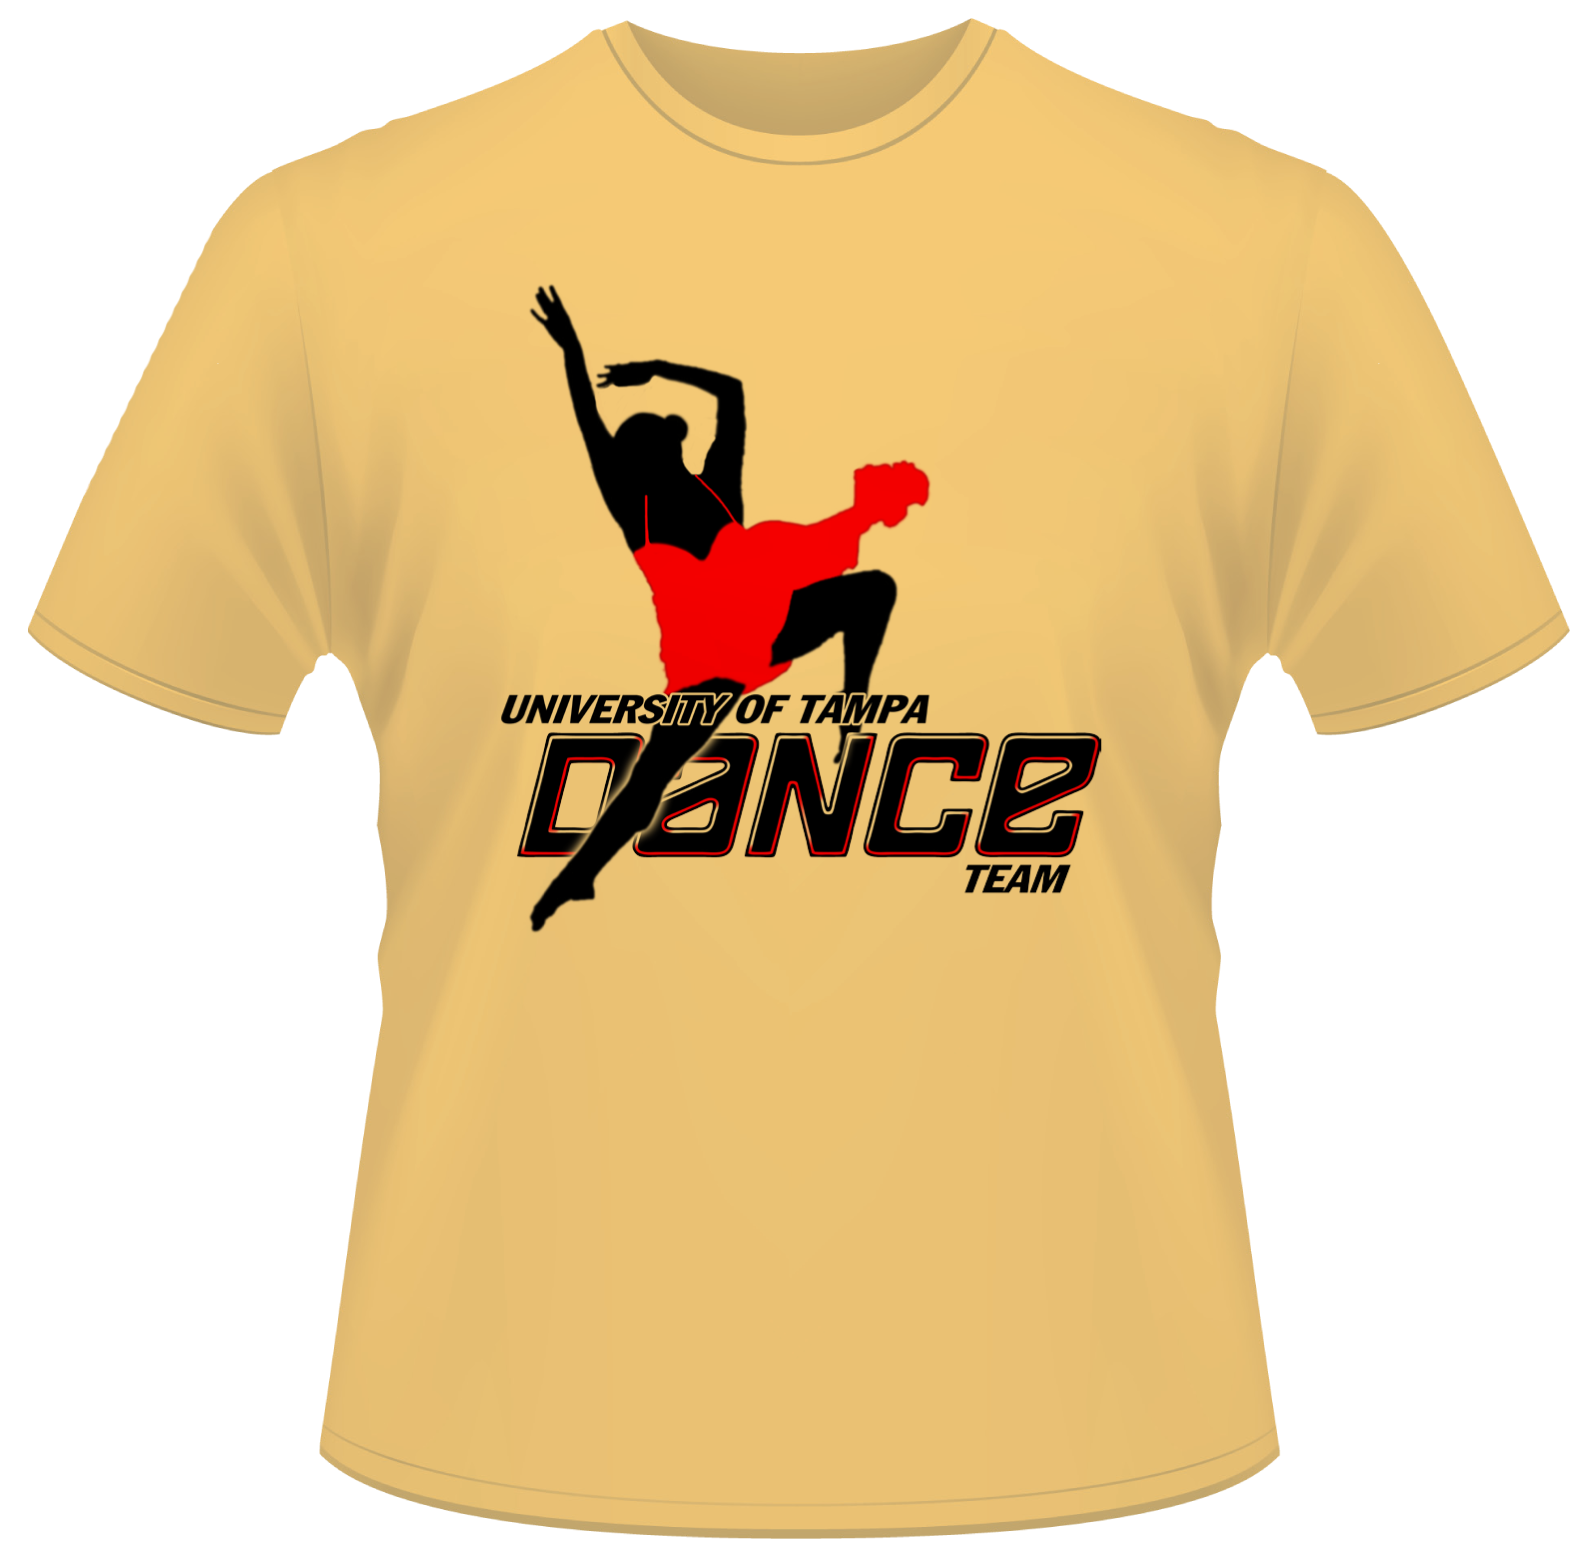 Drill team competition quotes quotesgram for College dance team shirts